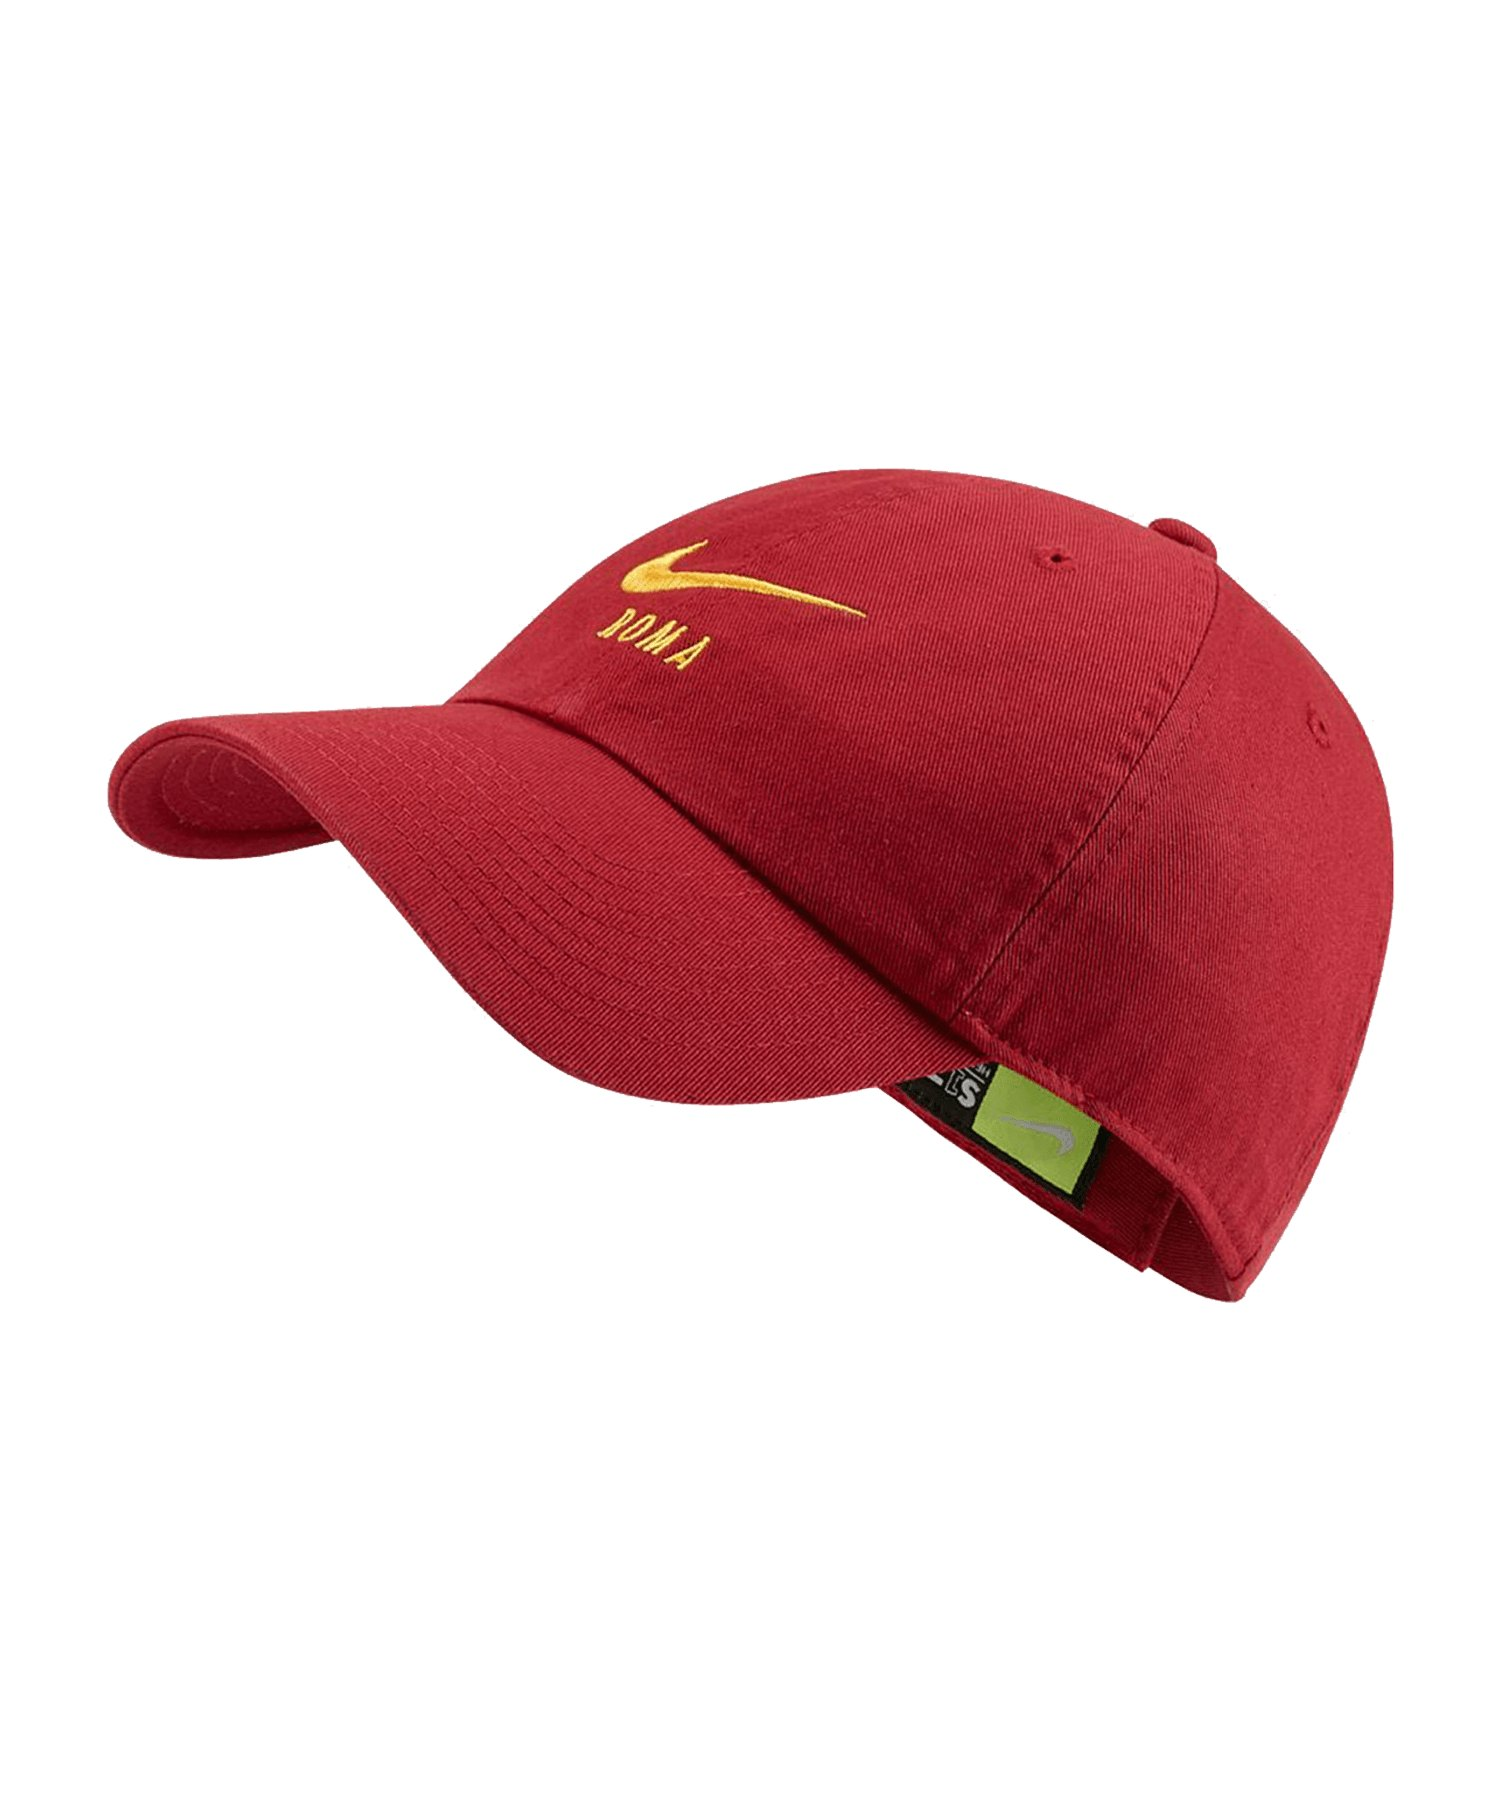 Nike A.S. Rom Heritage86 Cap Kappe Rot F613 - Rot